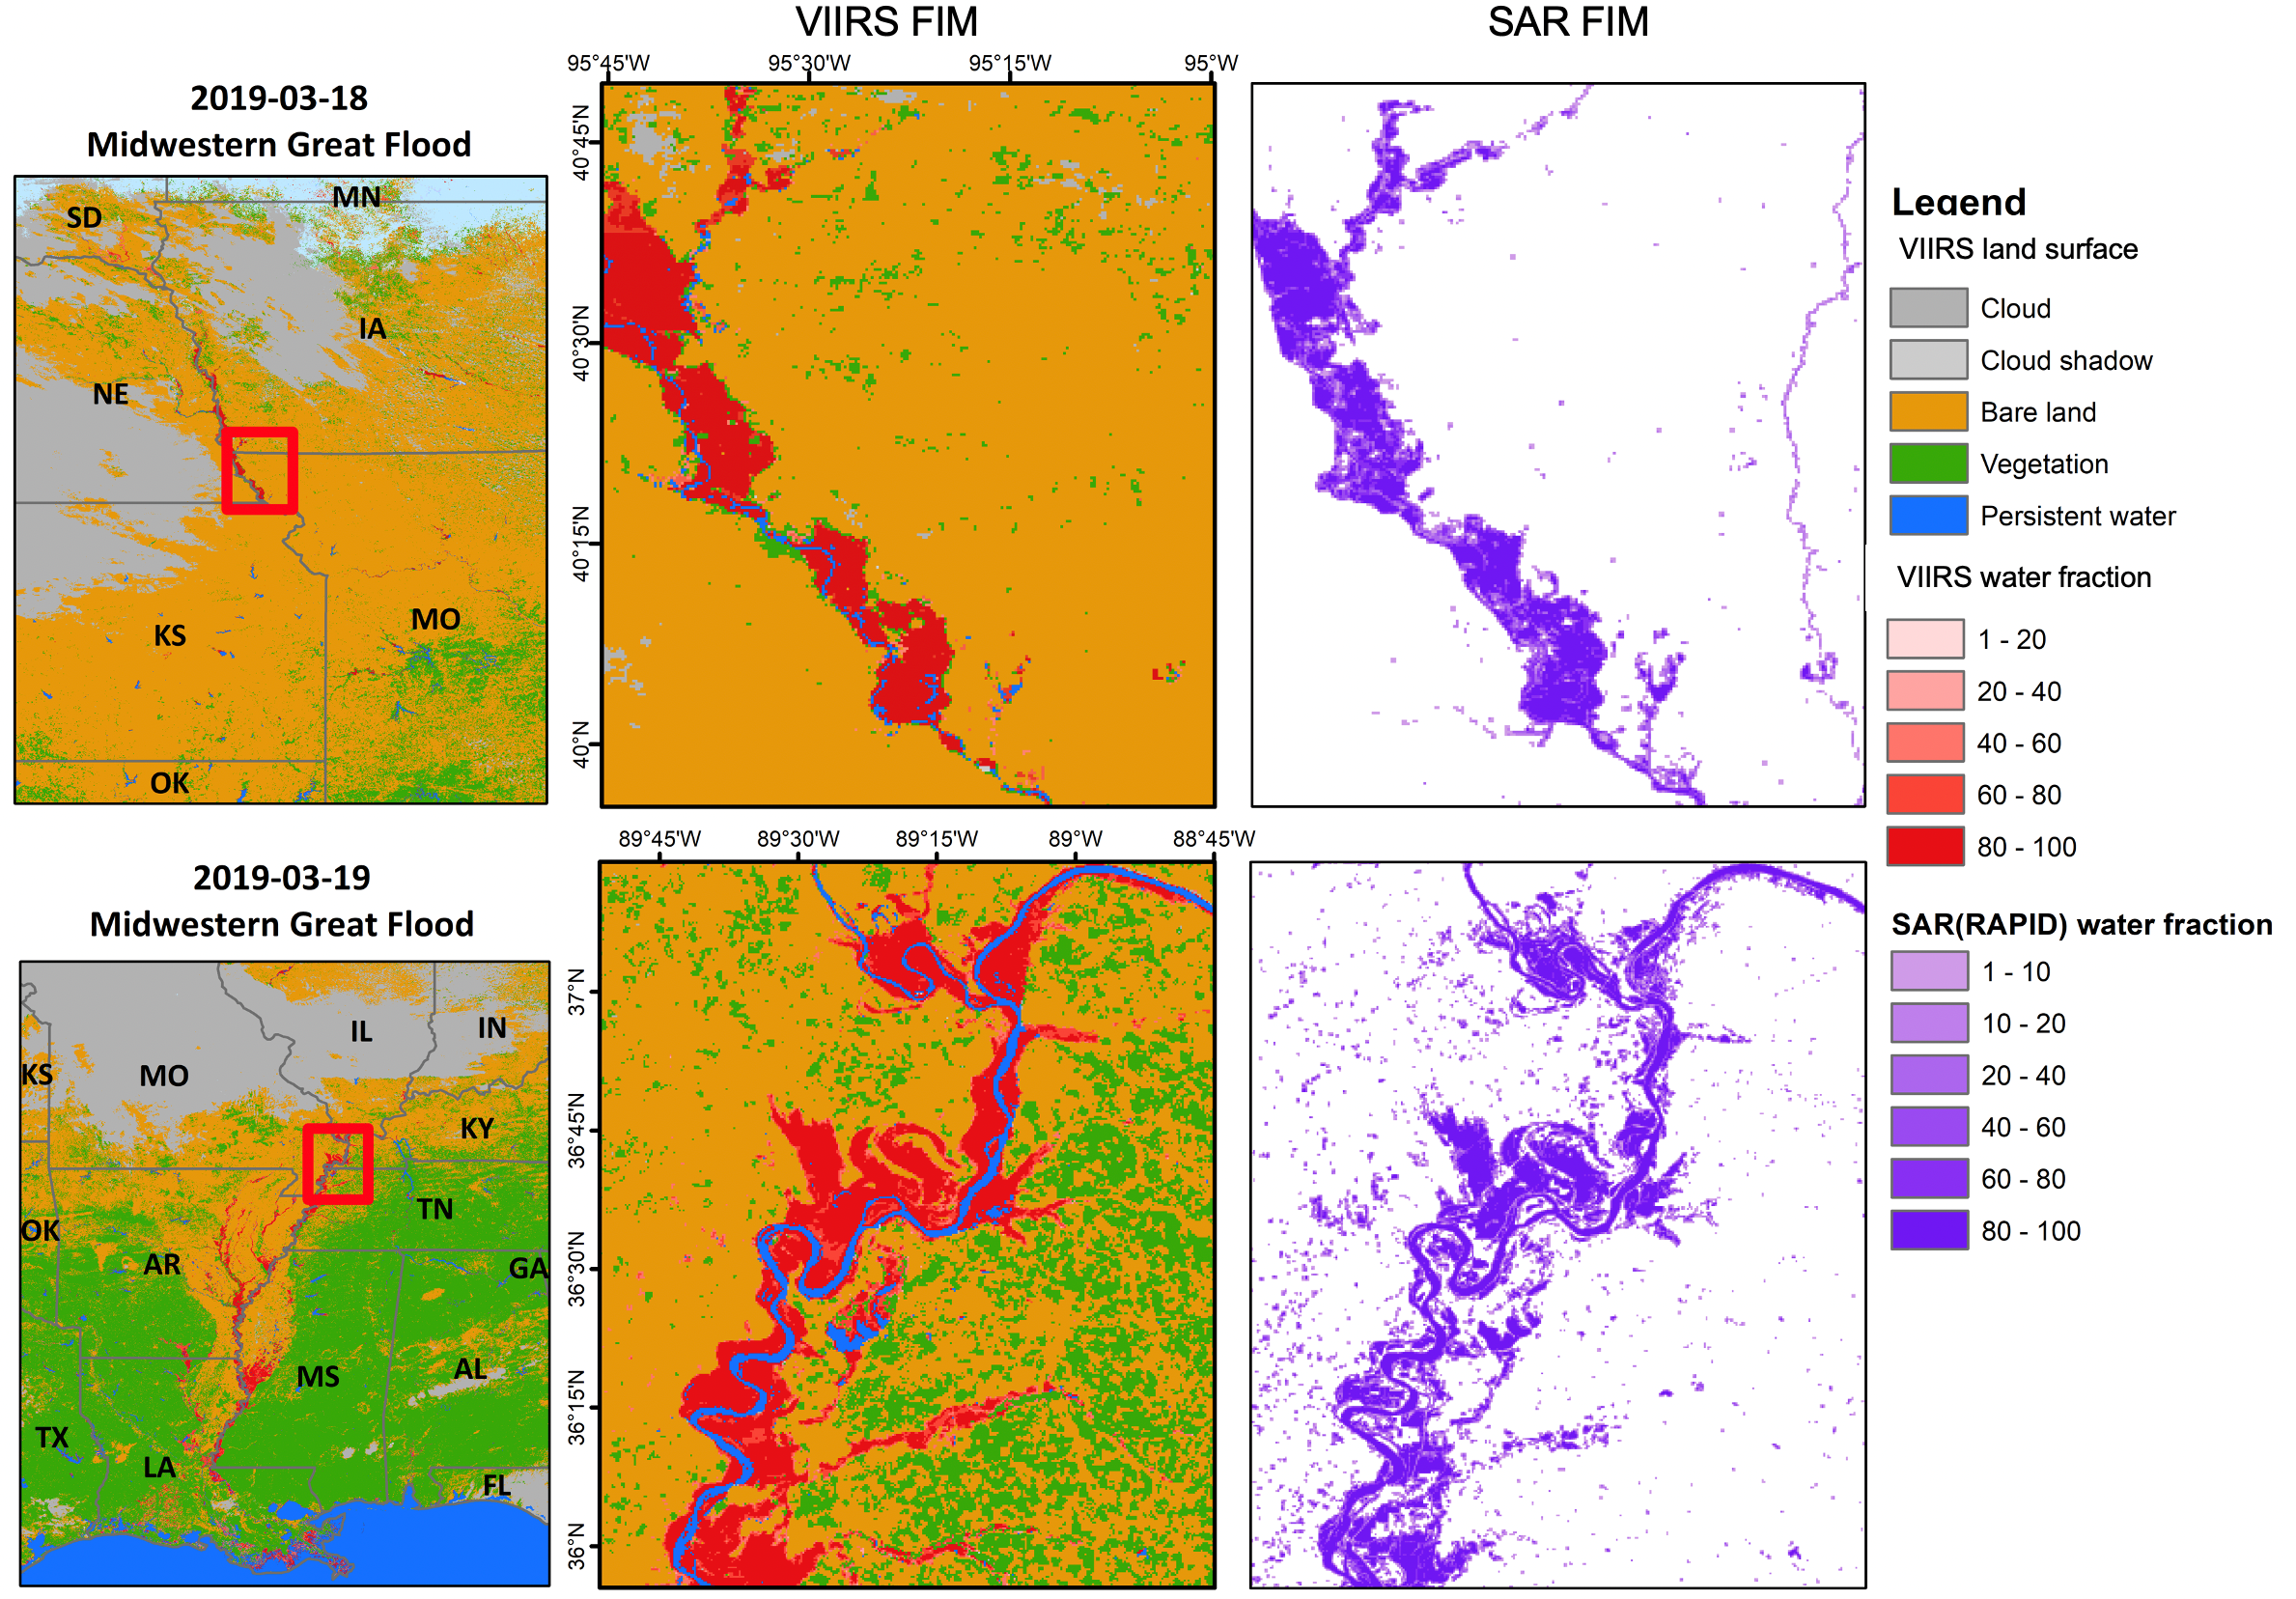 Figure 1. Two comparison examples of VIIRS FIM products and Sentinel-1 SAR FIM products in March during Midwestern Great Flood in 2019 (SAR FIM products are available at https://rapid-nrt-flood-maps.s3.amazonaws.com/).